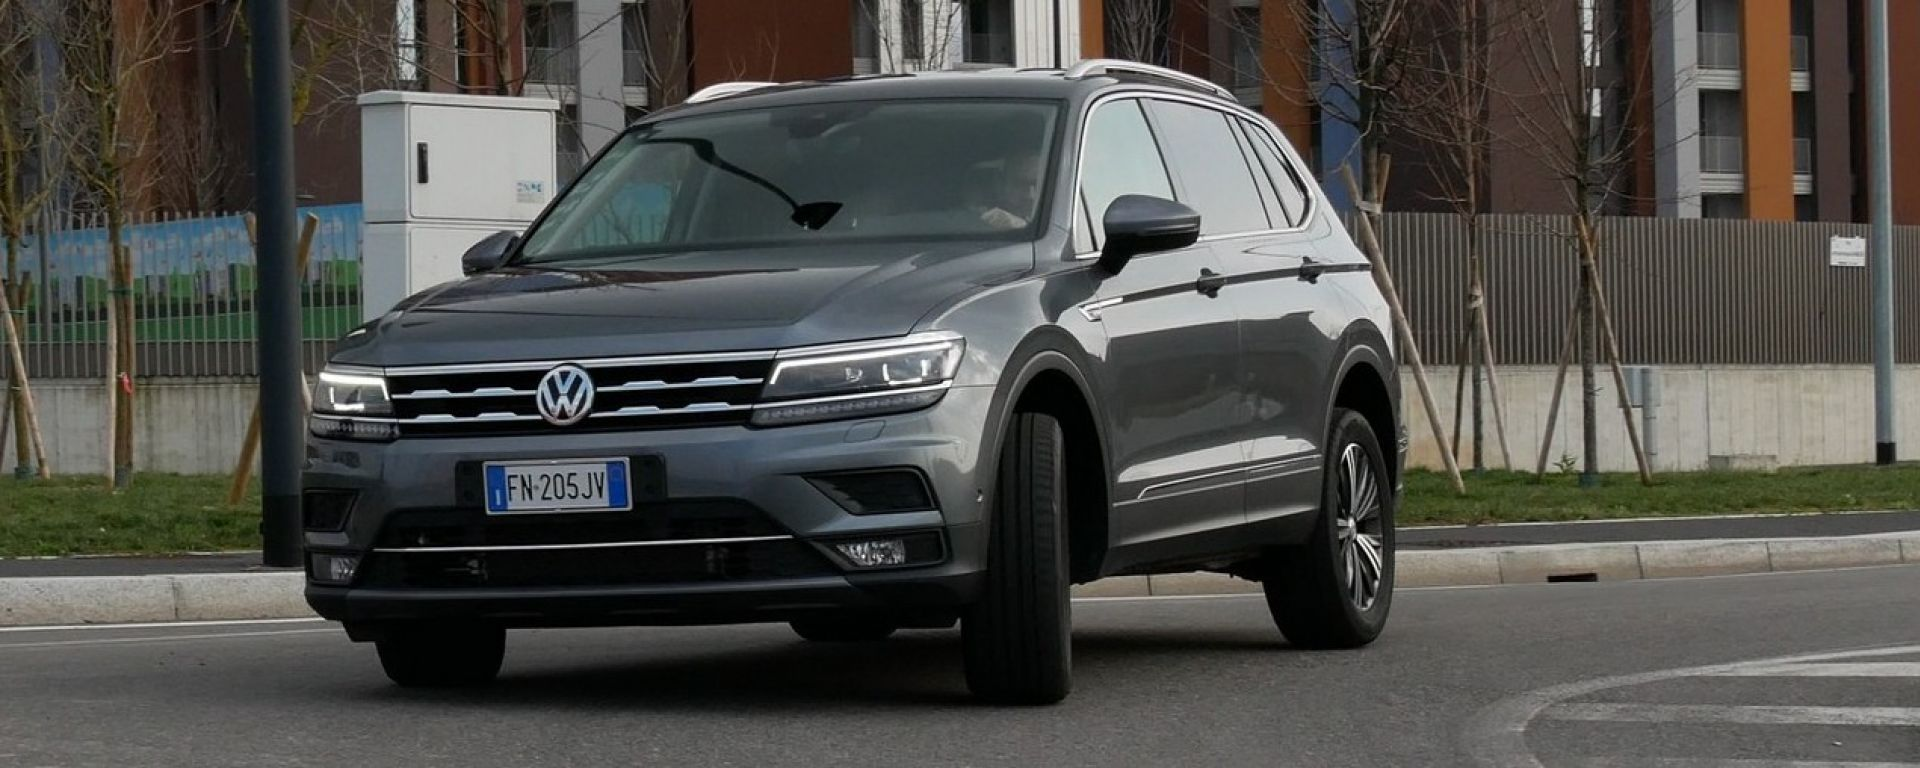 volkswagen tiguan allspace advanced 2 0 tdi 150 cv dsg 4motion prova dimensioni consumi prezzo. Black Bedroom Furniture Sets. Home Design Ideas